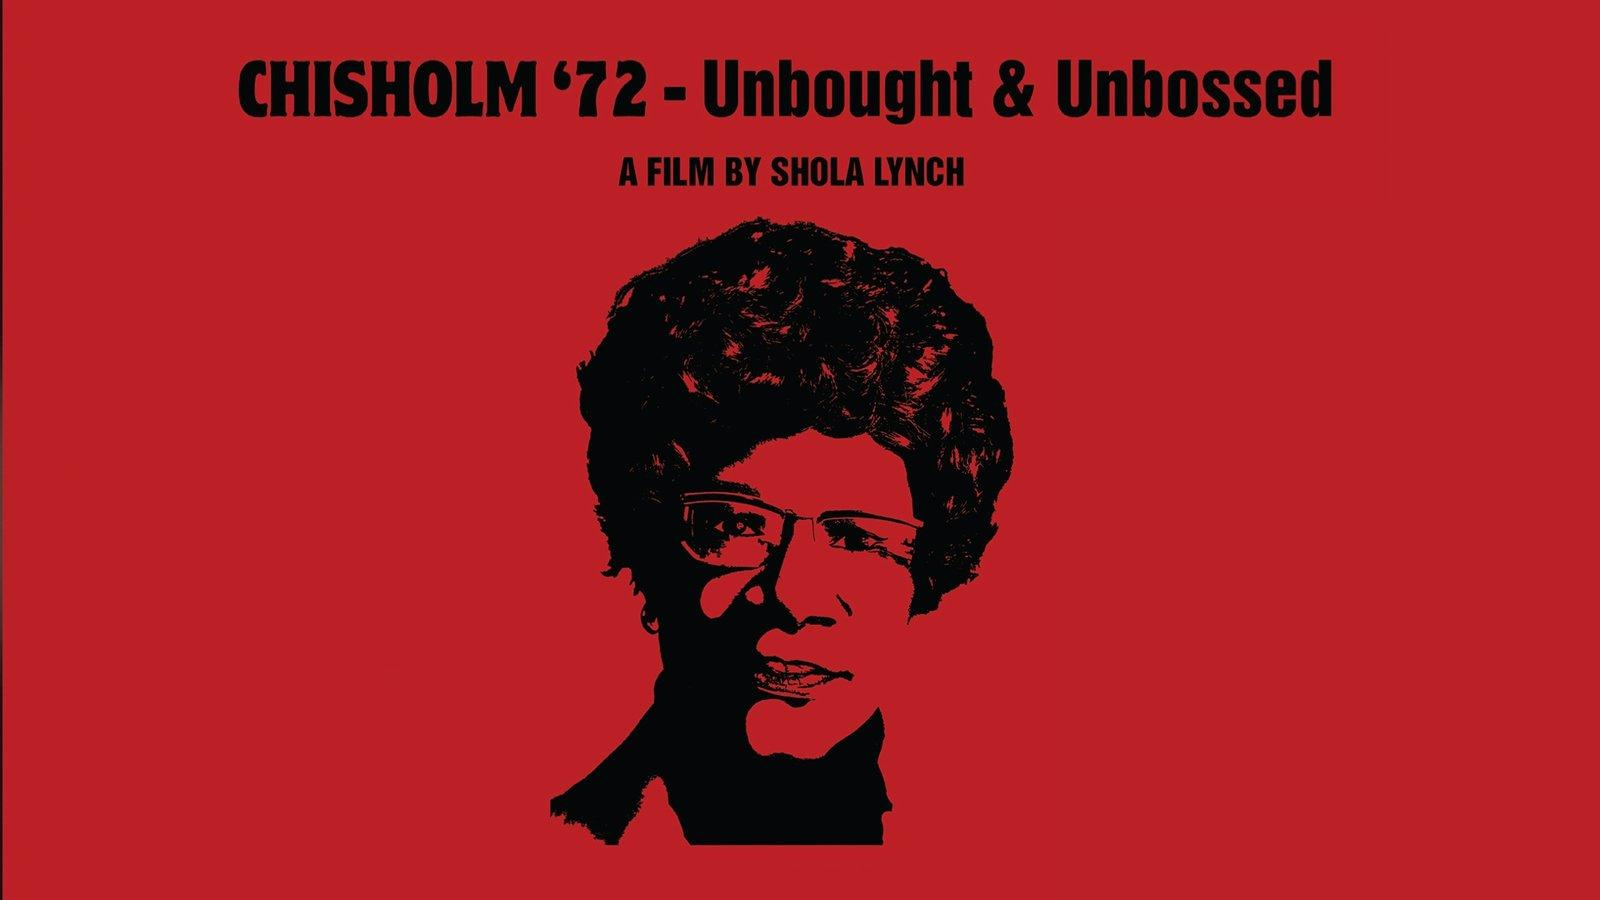 Movie cover art with Shirley Chisholm's face